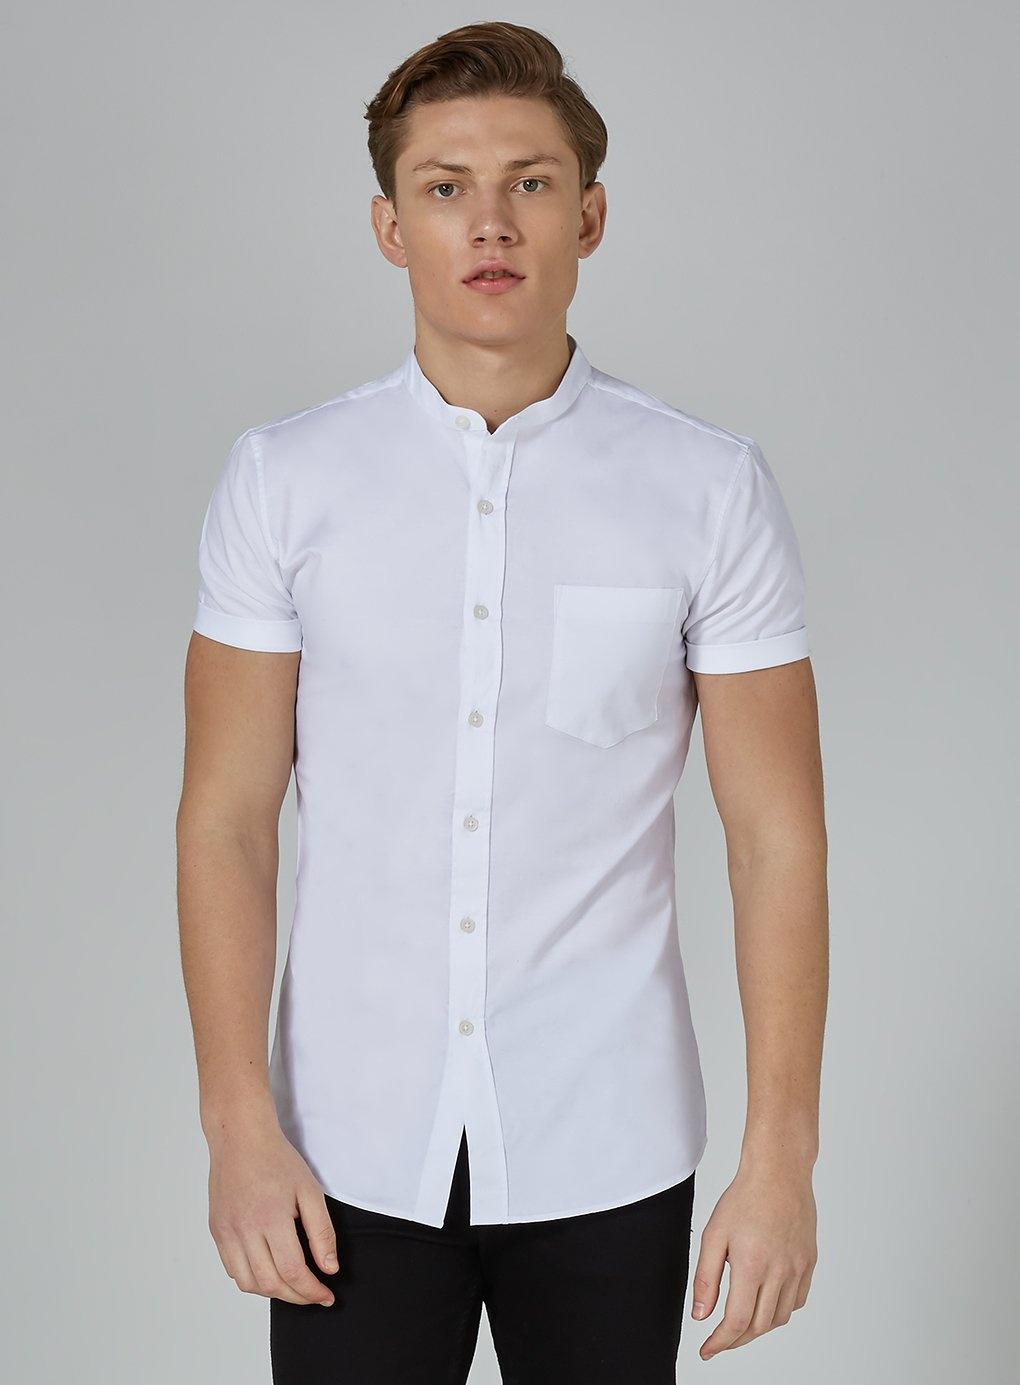 5adbc9dbd200 ... White Stand Collar Stretch Skinny Oxford Shirt for Men - Lyst · Visit  TOPMAN. Tap to visit site